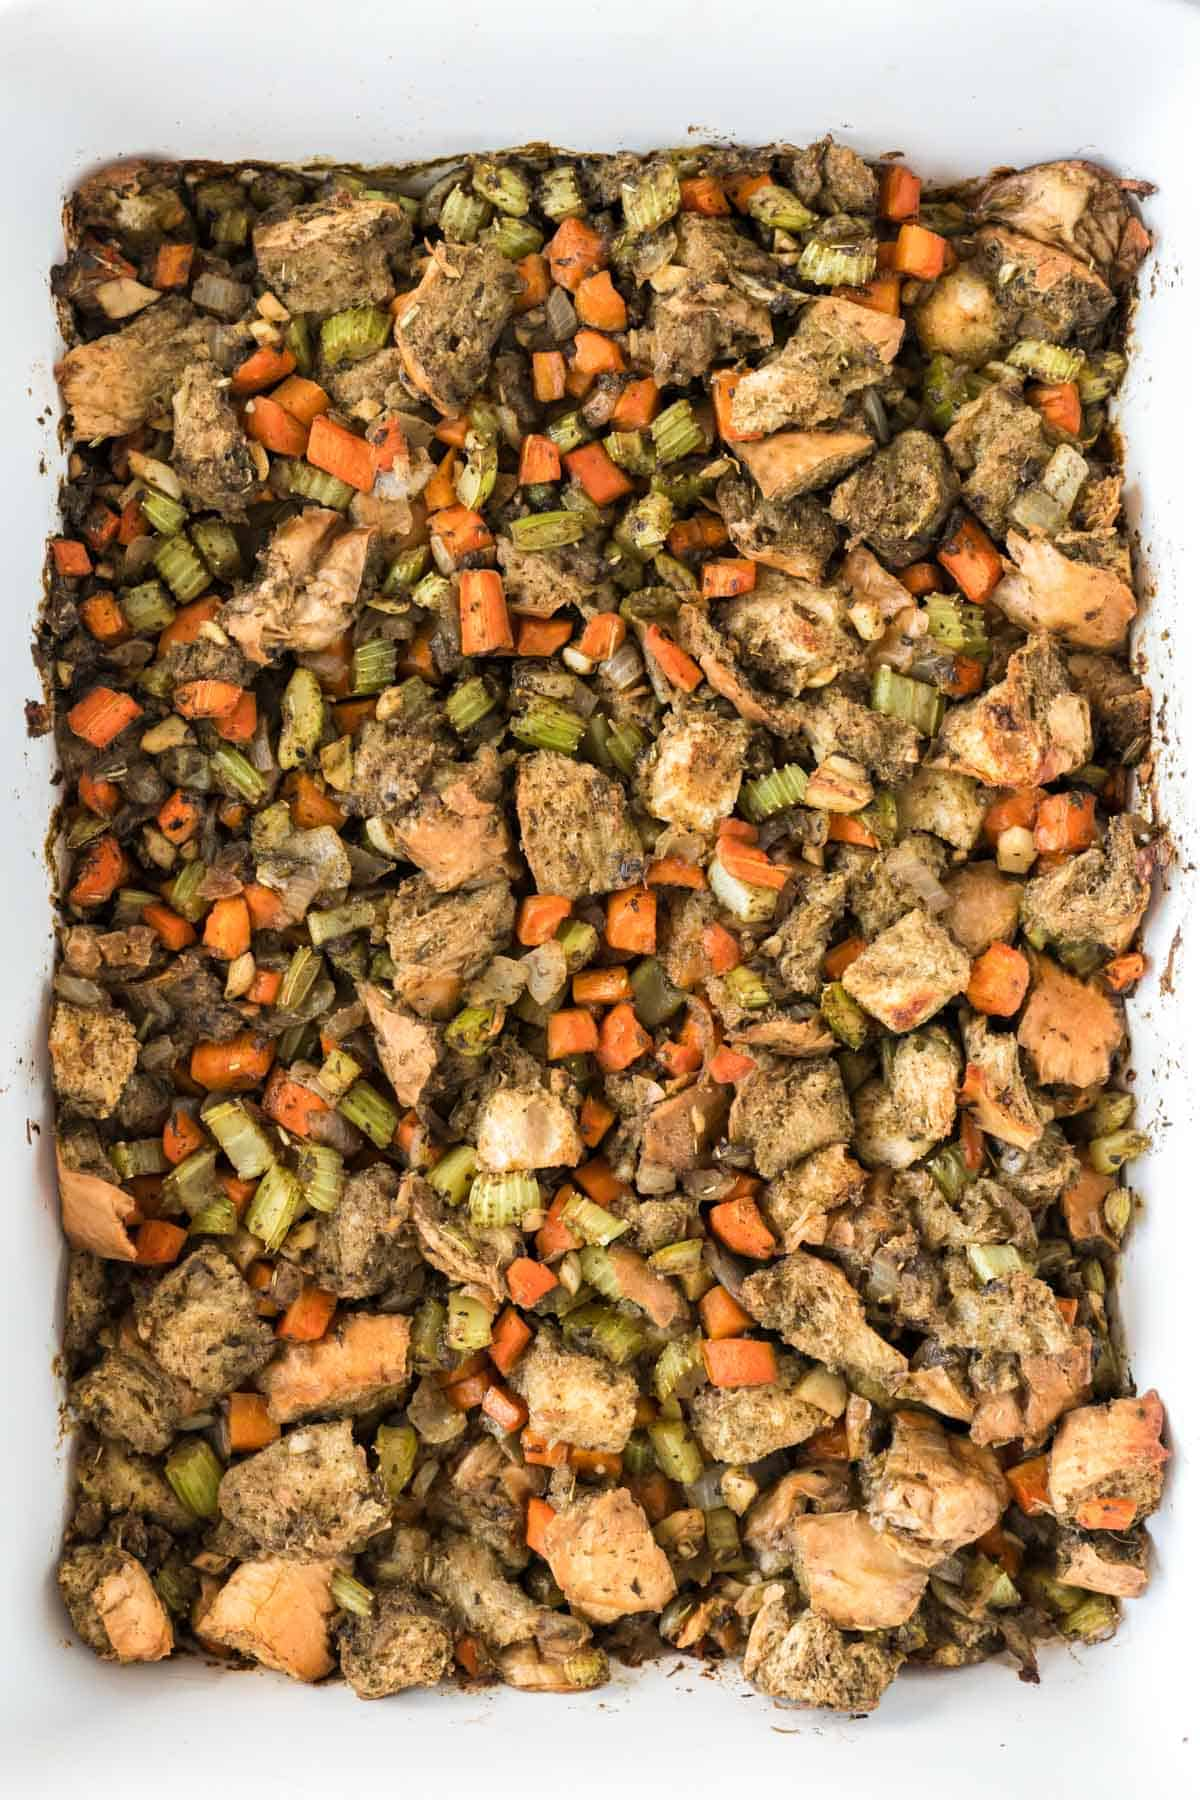 up close showing the texture of the dairy free stuffing